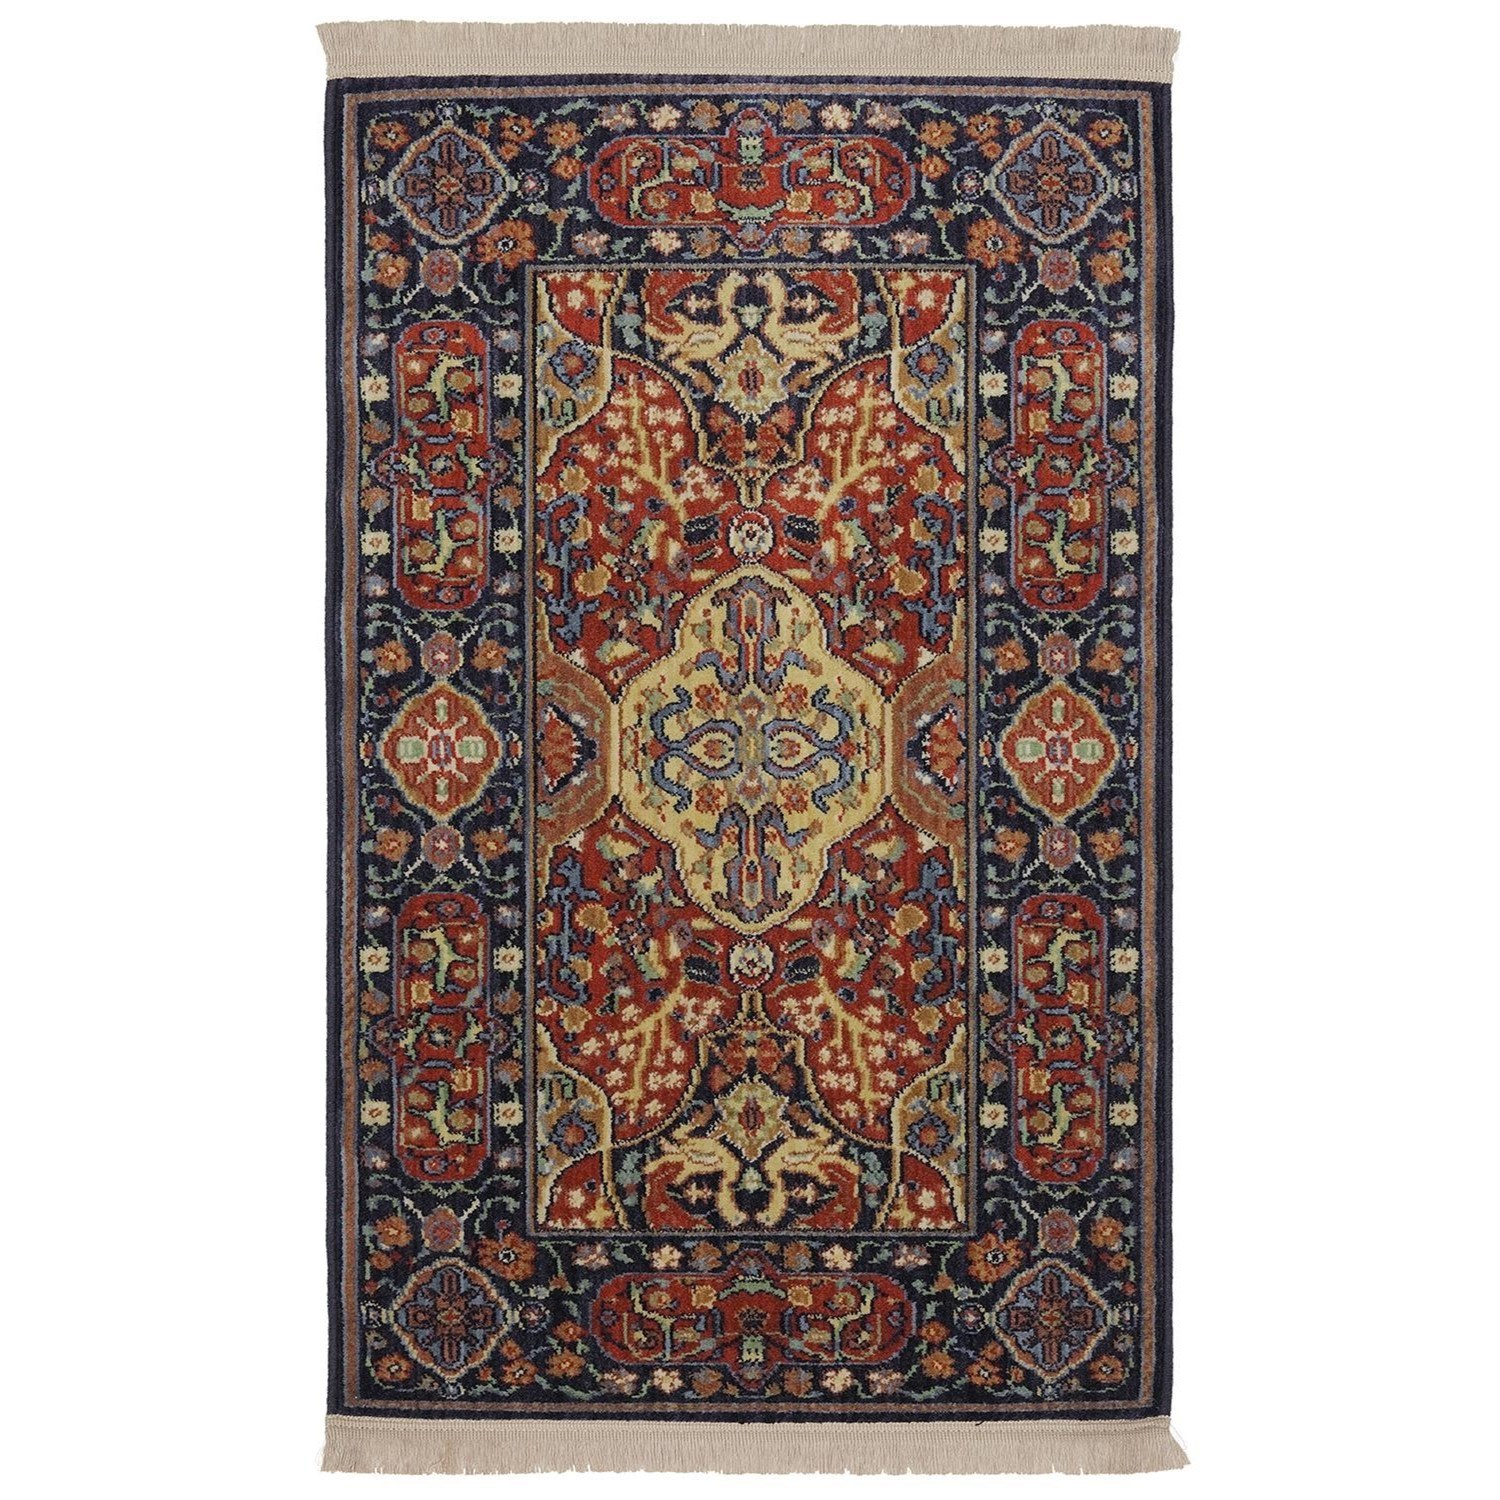 Karastan Rugs English Manor 5'7x7'11 Hampton Court Rug - Item Number: 02120 00504 067095